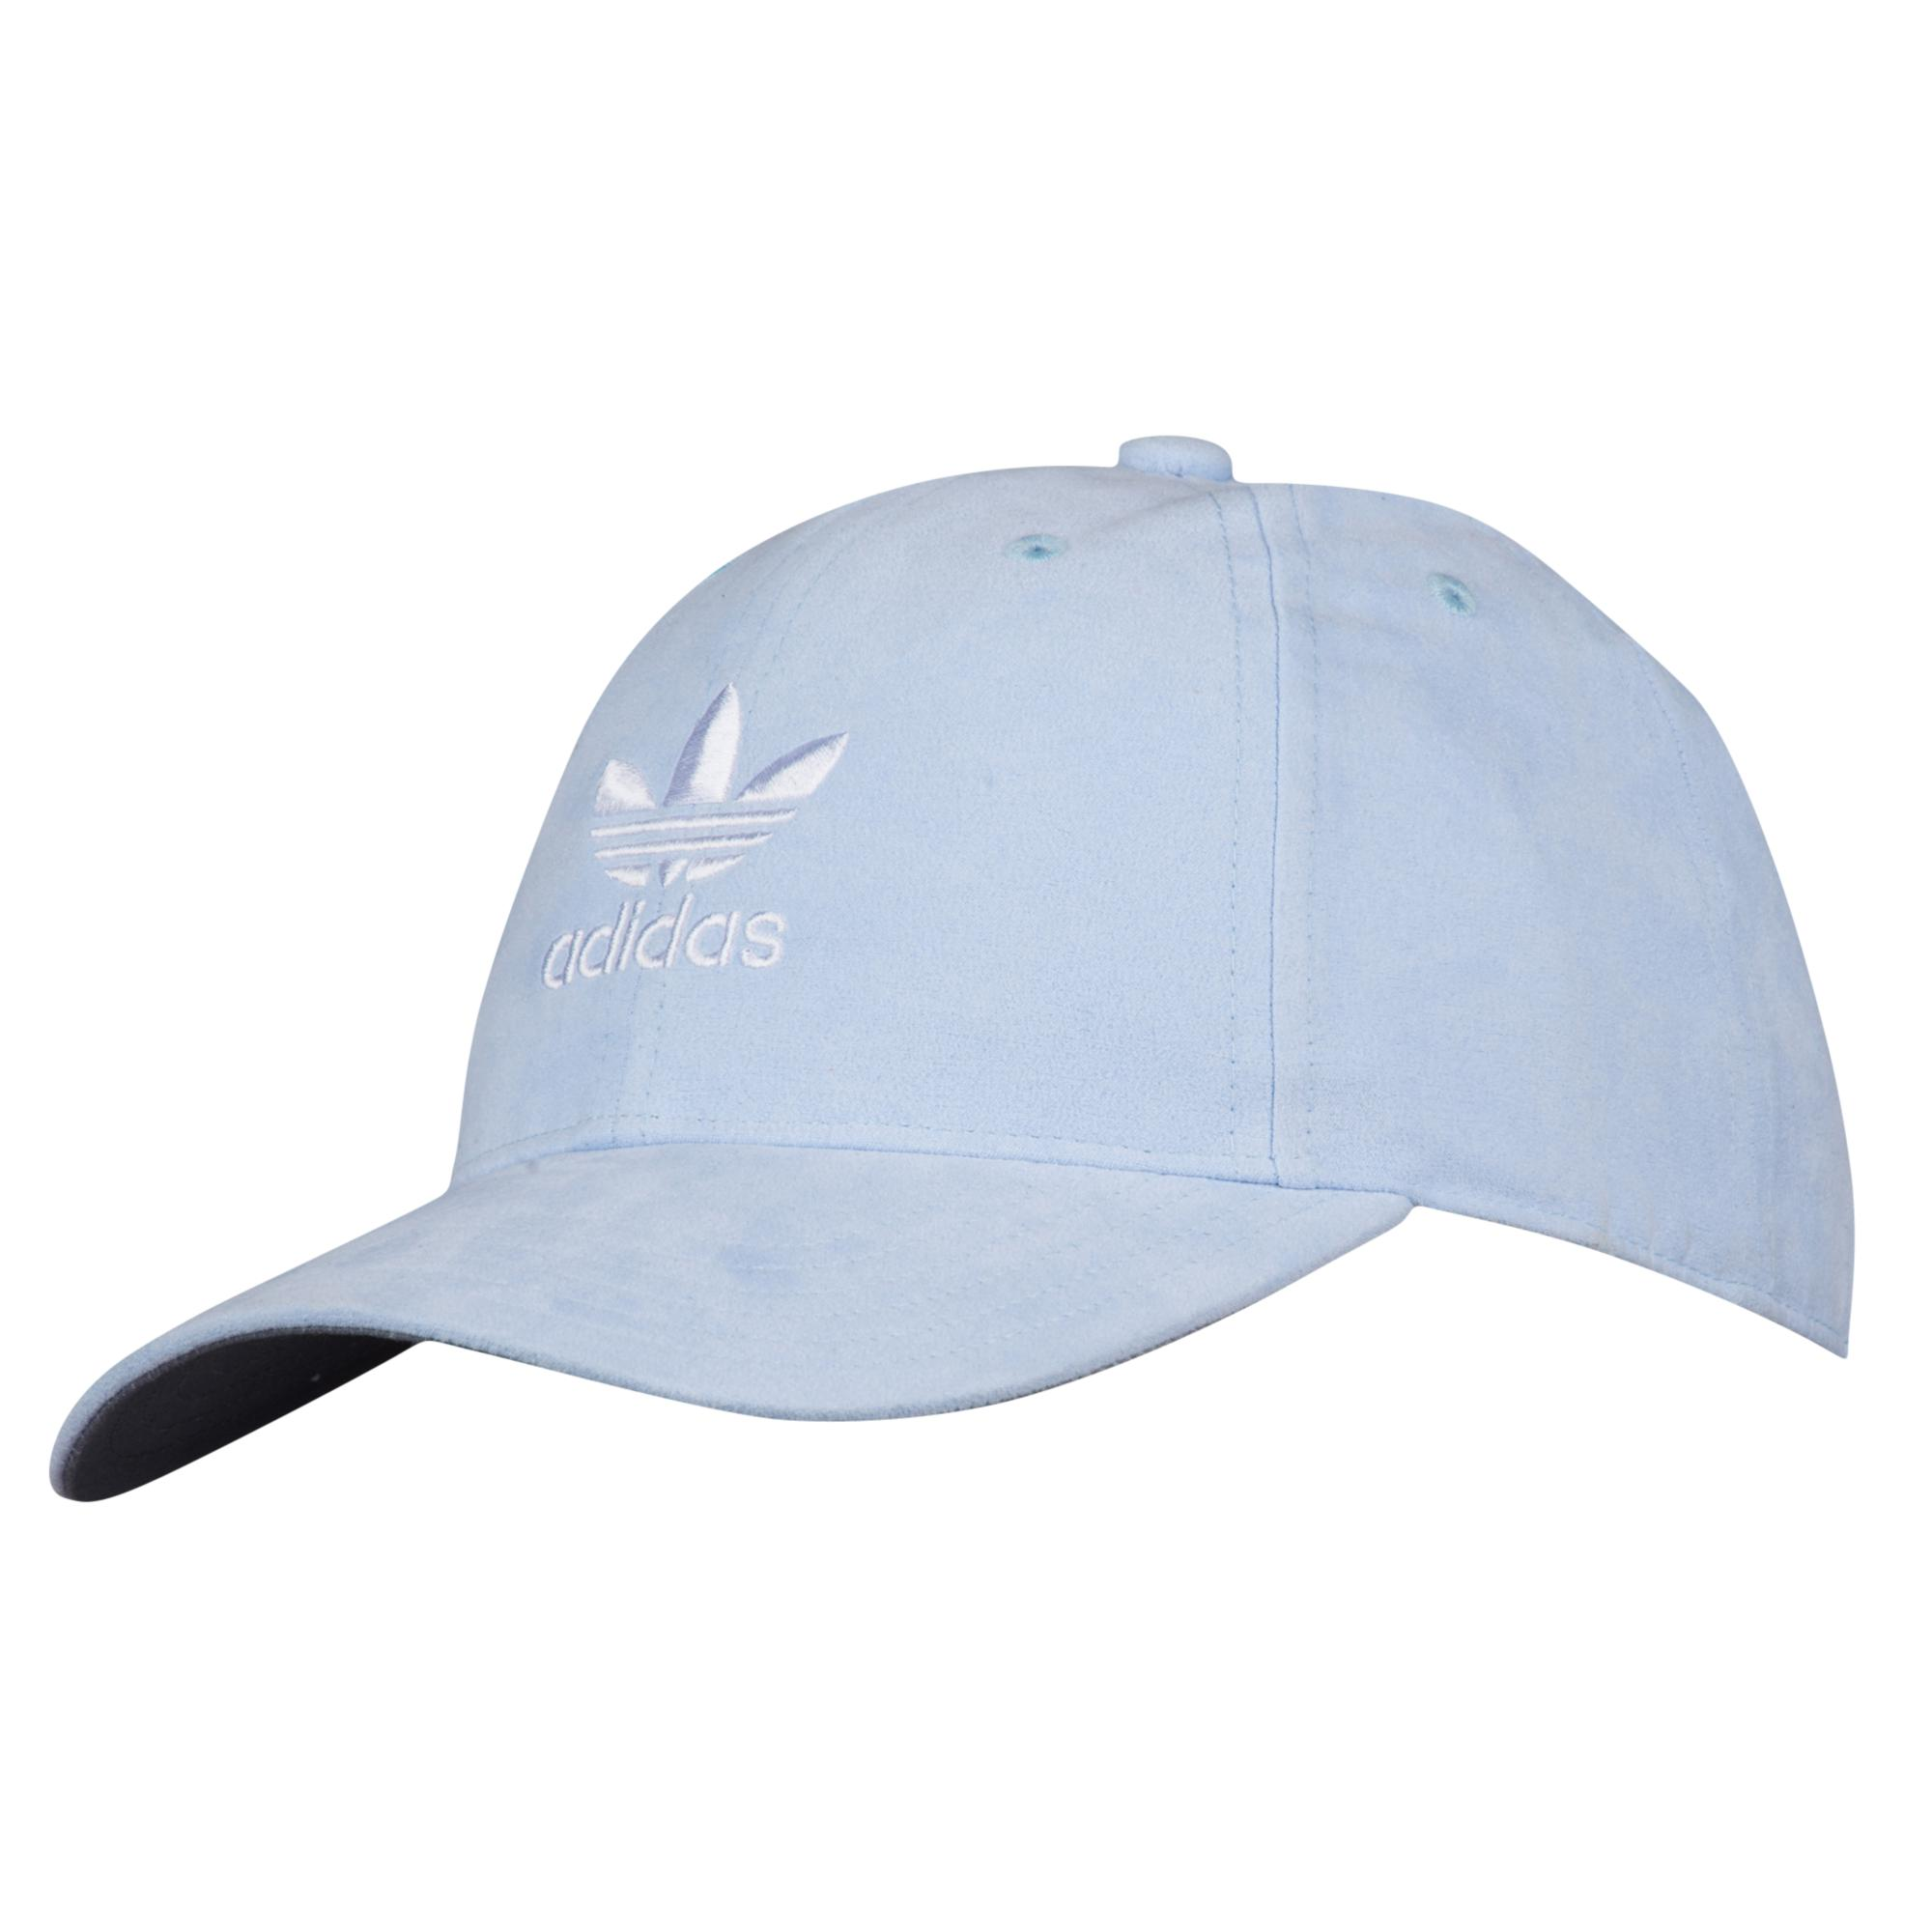 08929ace Lyst - adidas Originals Suede Relaxed Strapback Hat in Blue